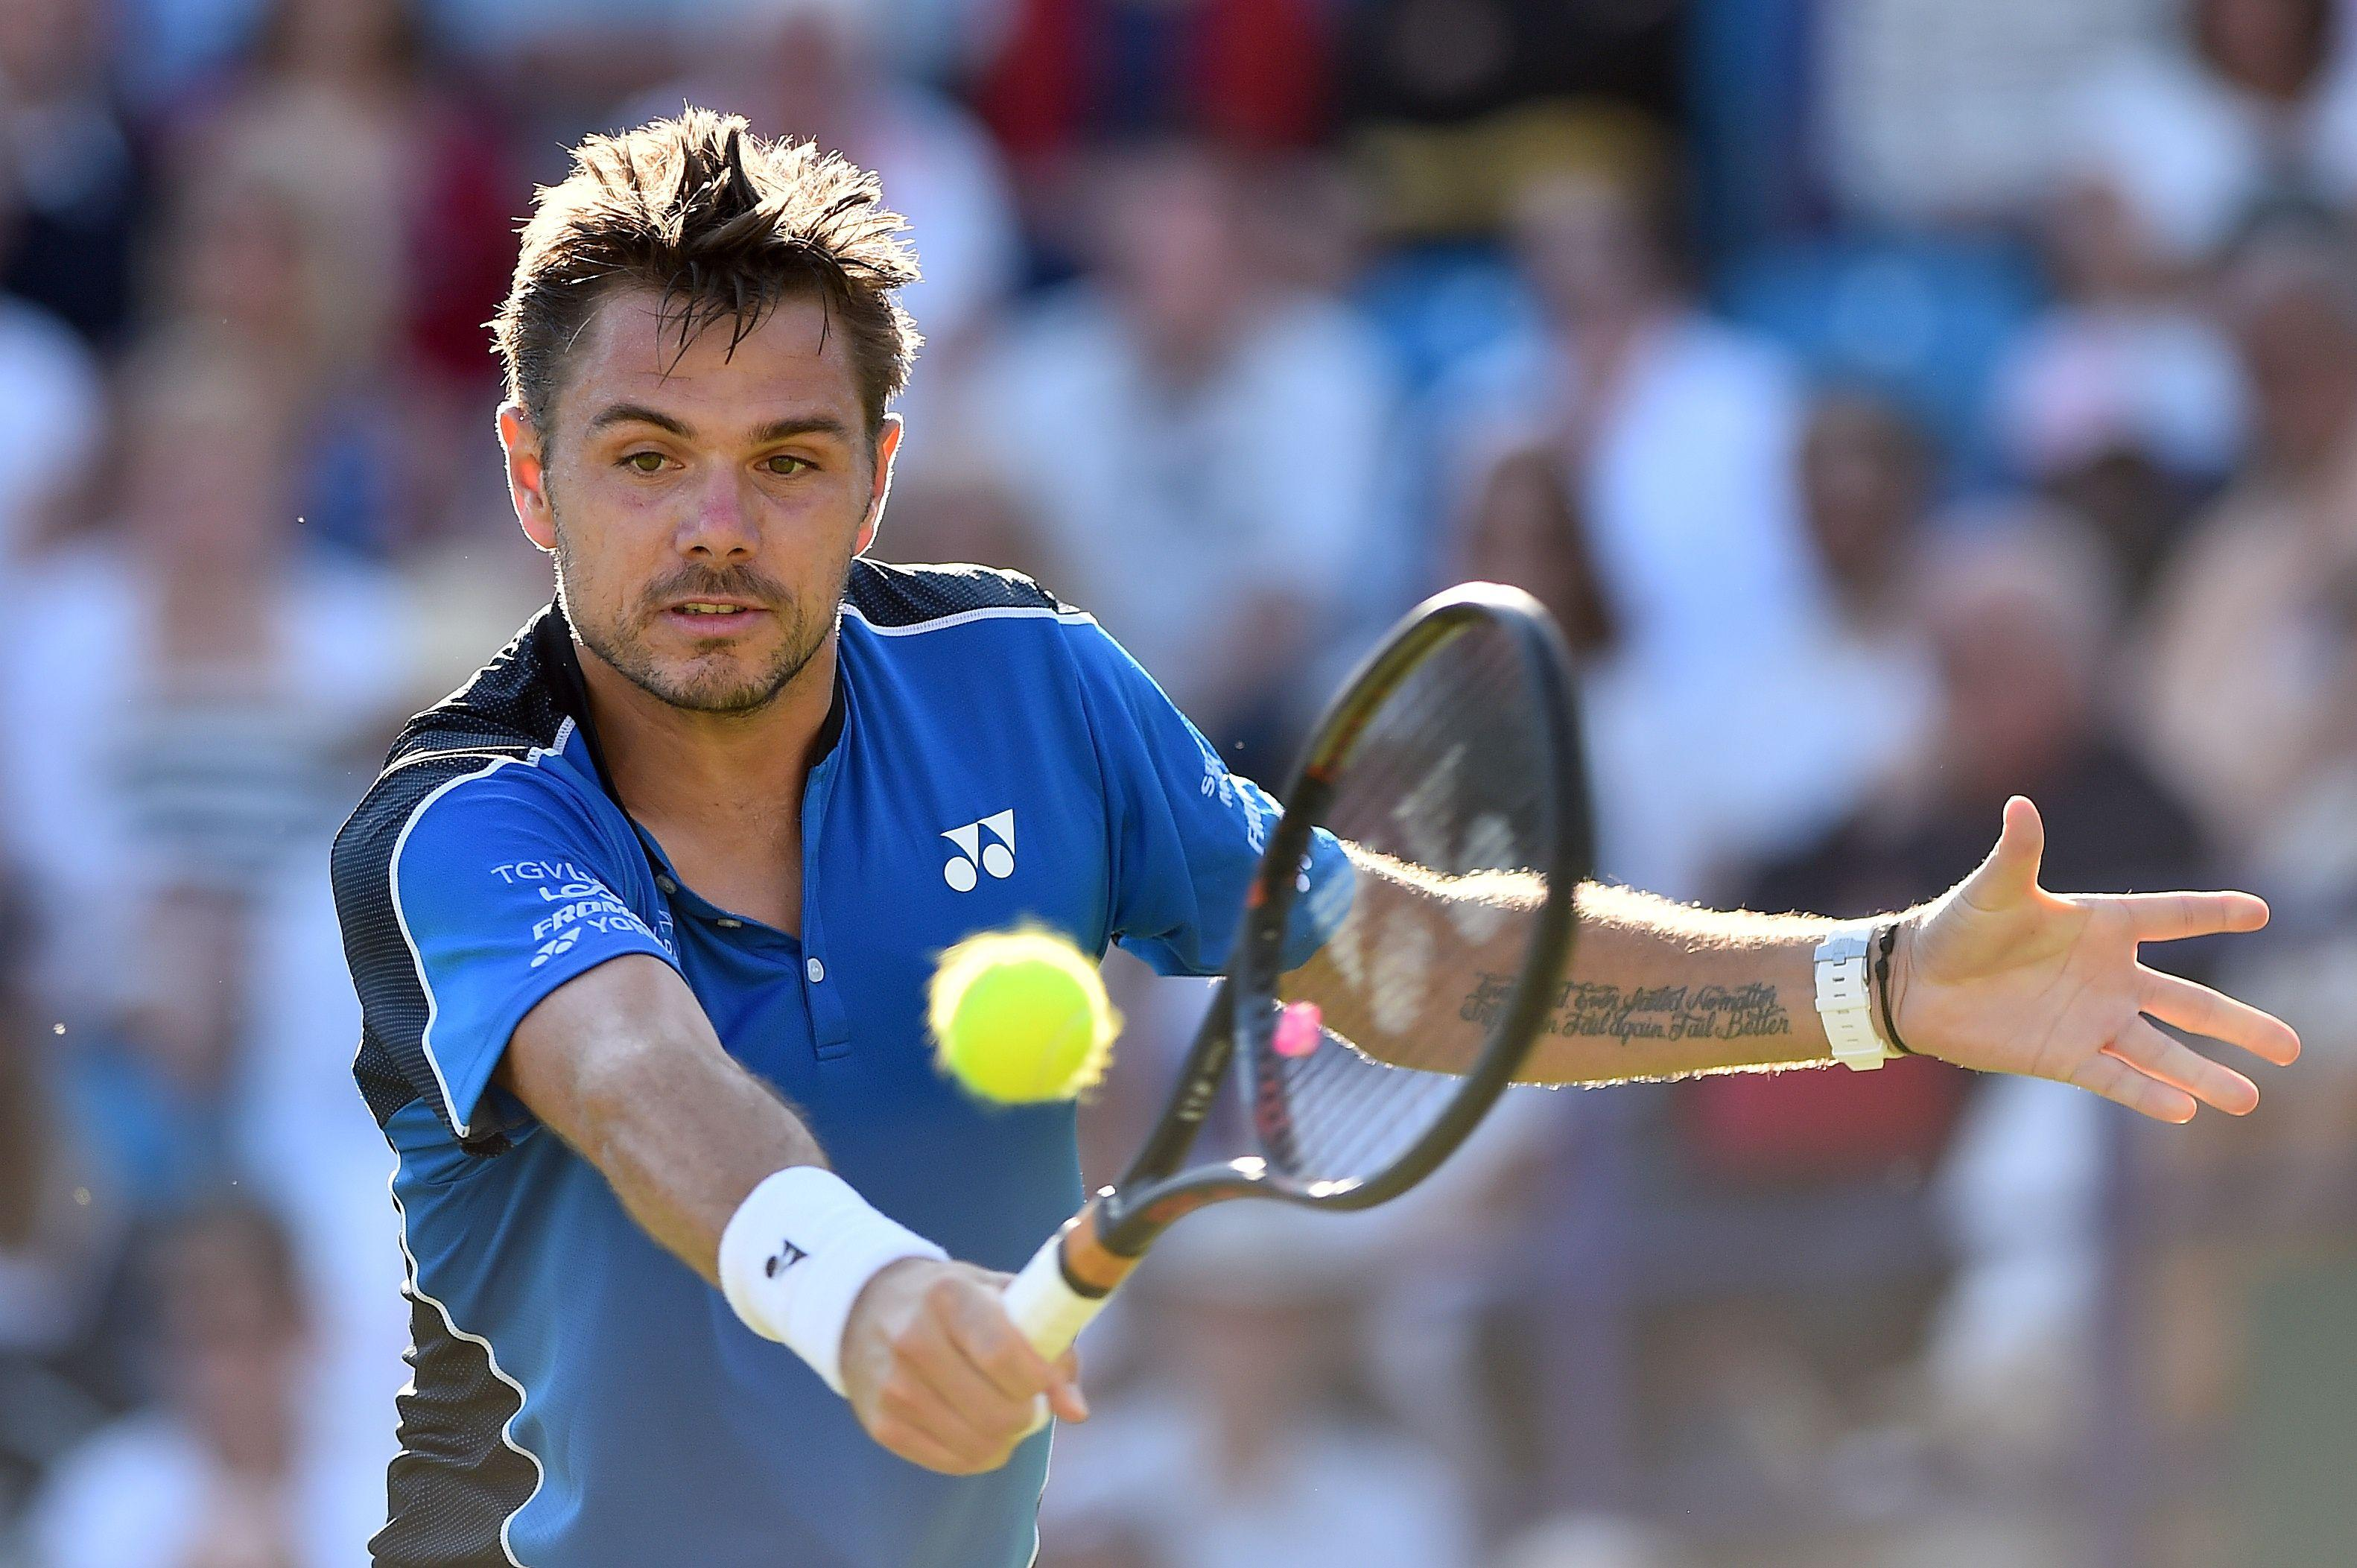 Stan Warwinka will feature at Wimbledon but, like Andy Murray, is still forging a path back from serious injury